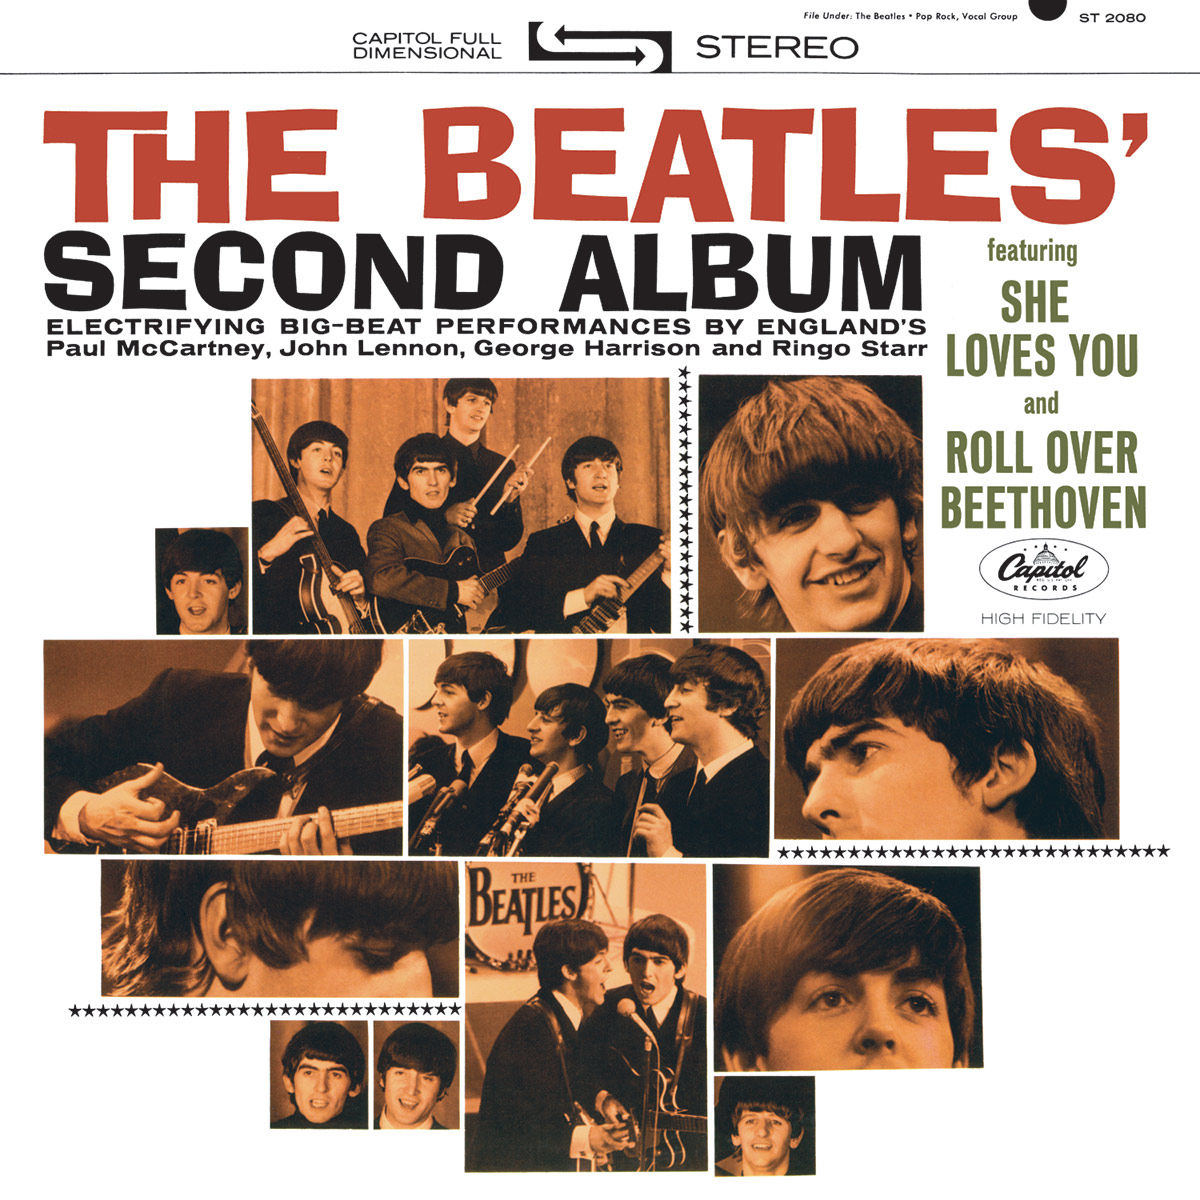 meet the beatles album images